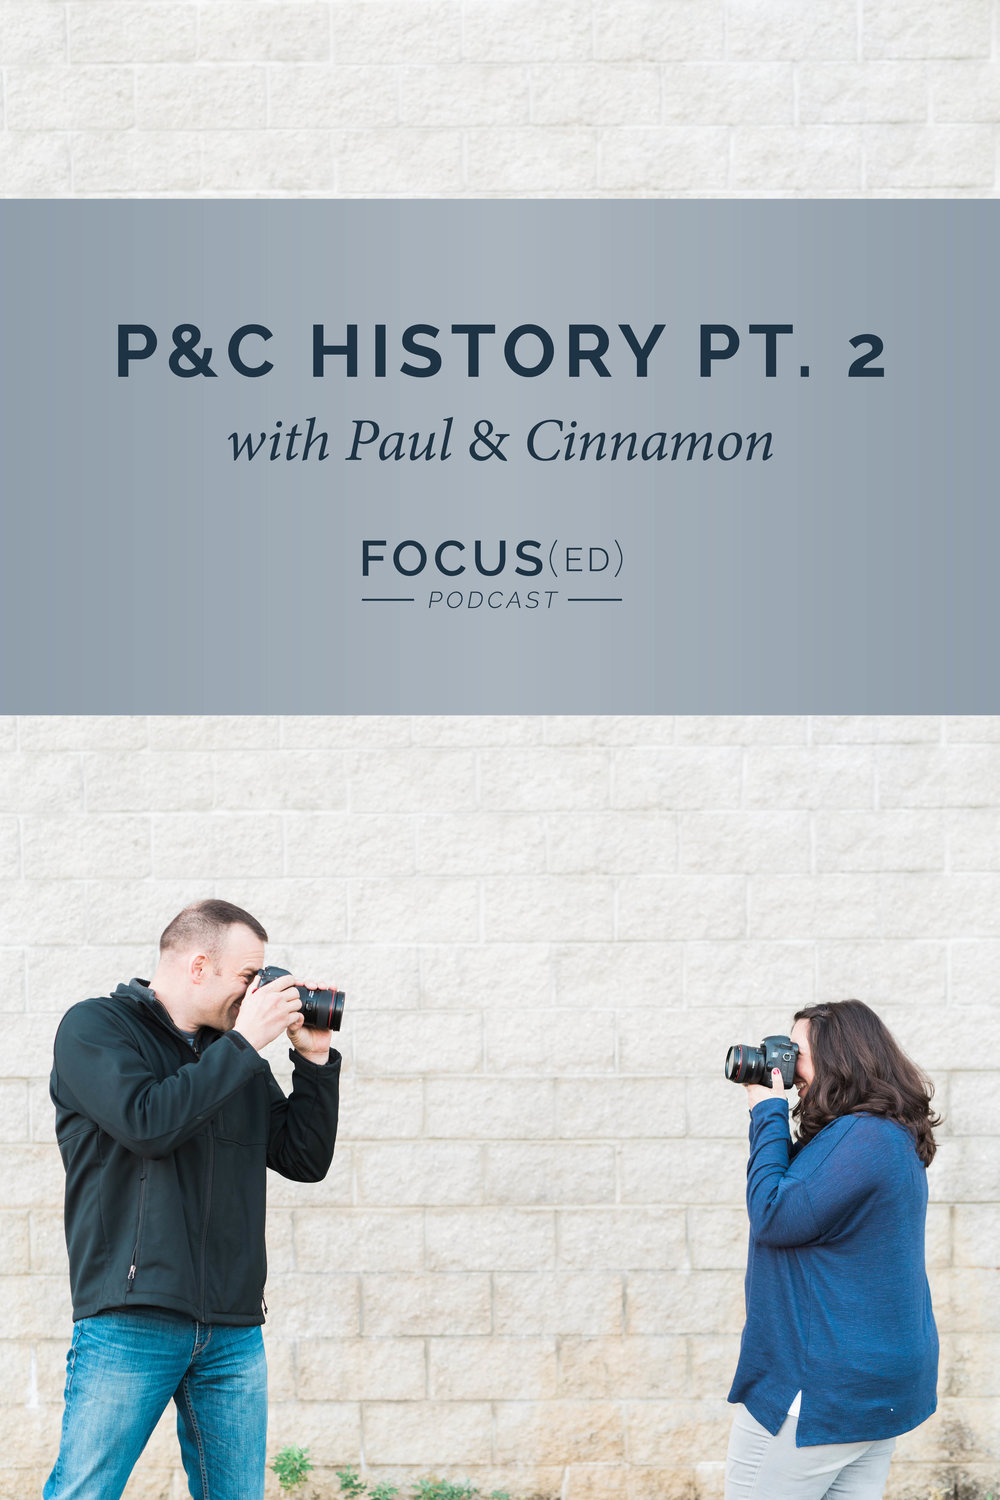 The history of Paul and Cinnamon, part 2 | Focused Podcast